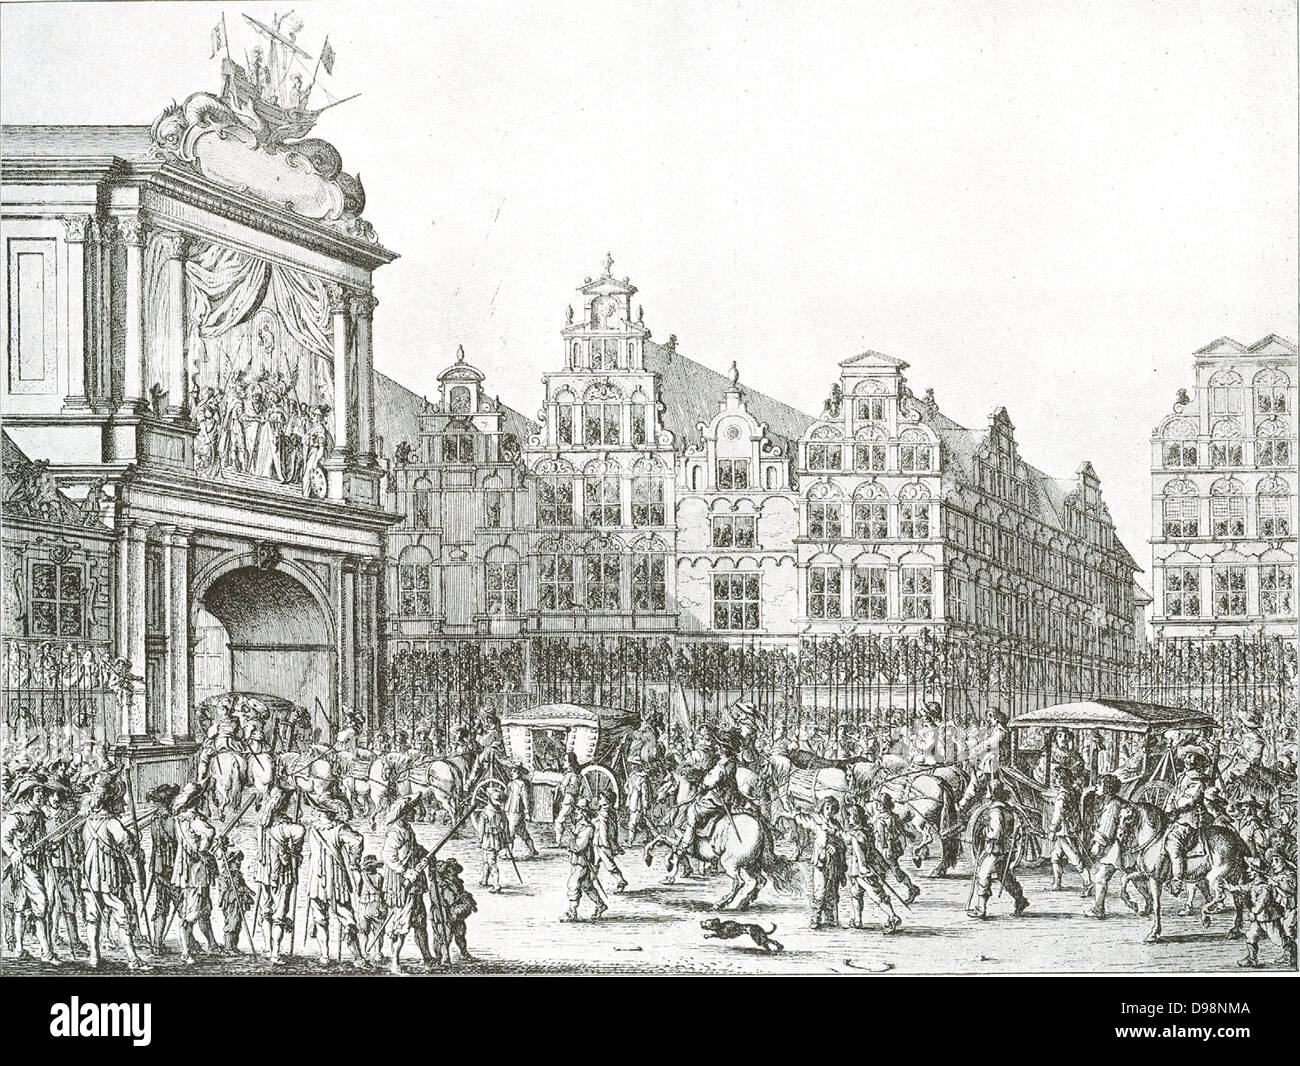 Celebrations marking the entry of Marie de Medici into Amsterdam in 1638 Marie de Medici (26 April 1575 – 4 July - Stock Image